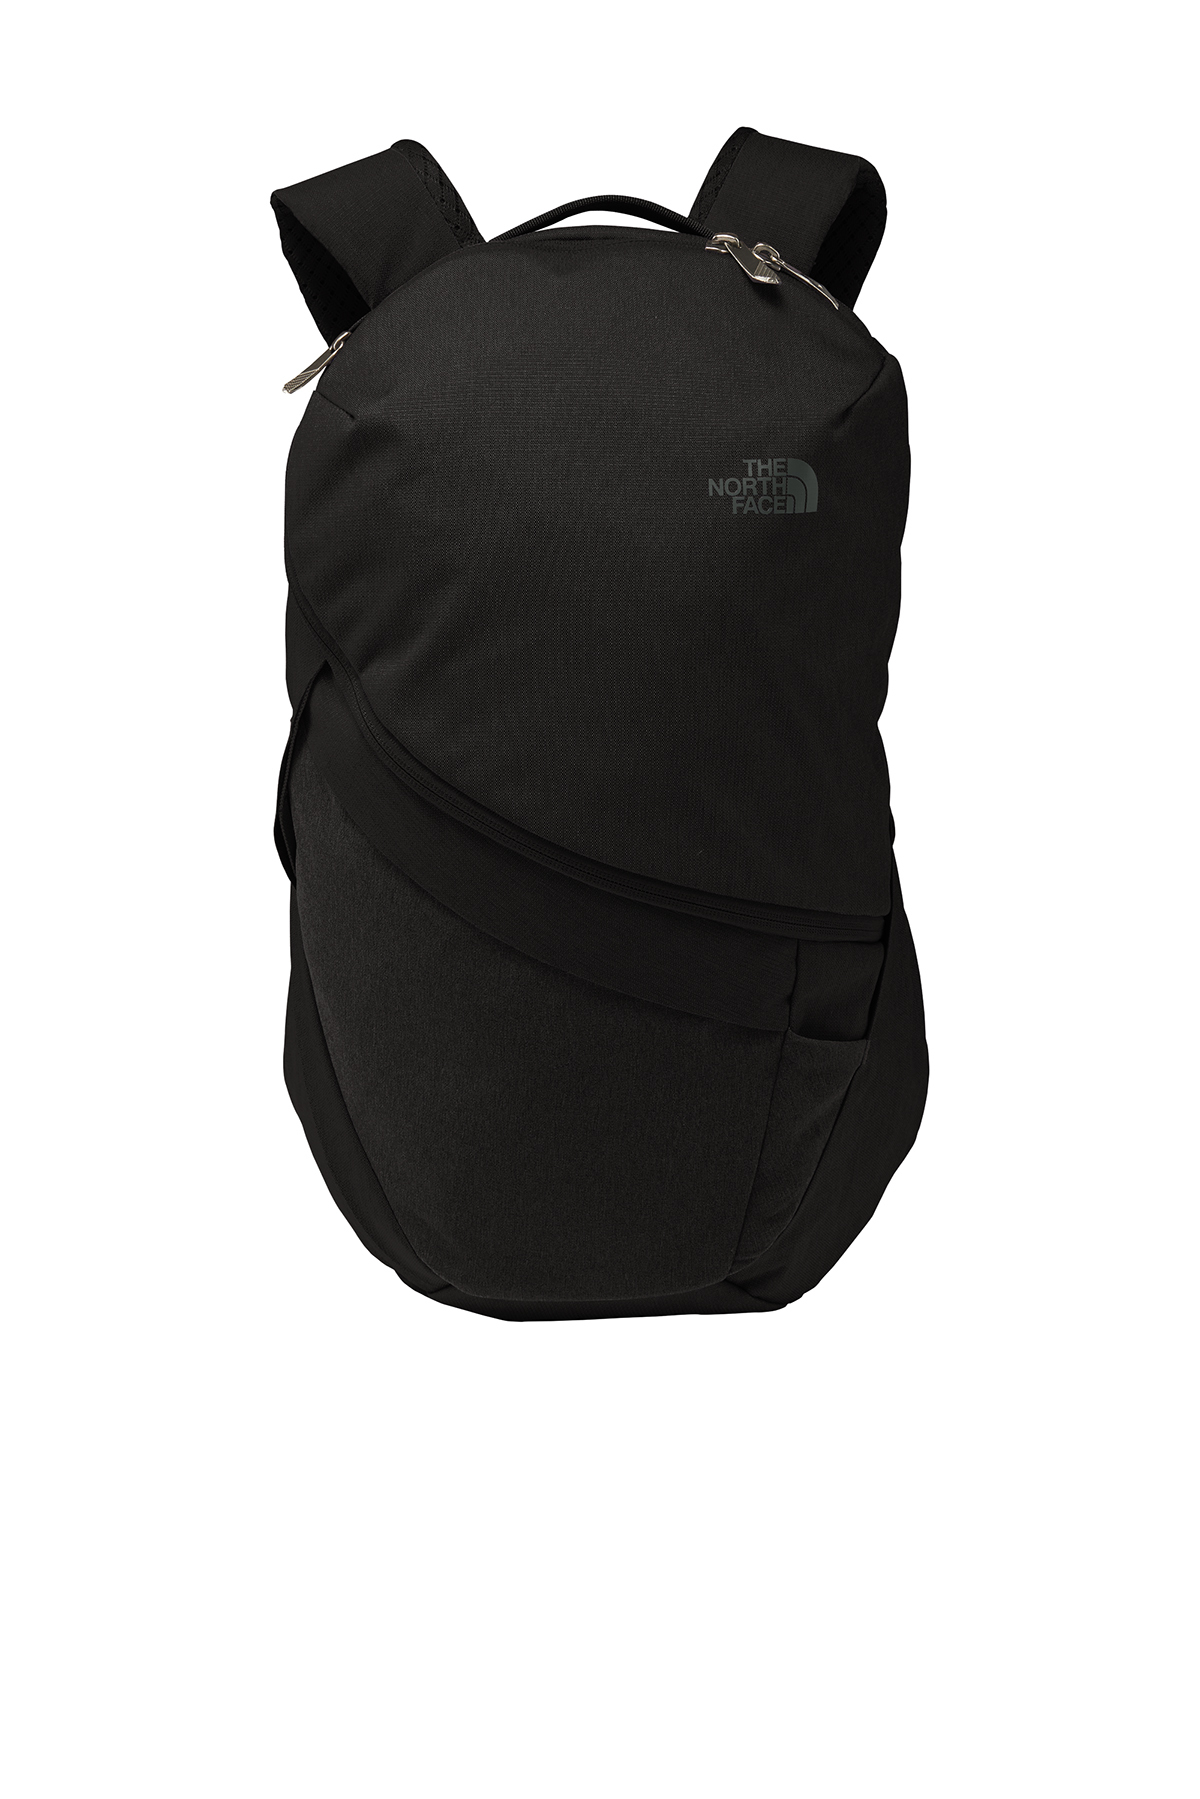 d4104e069 The North Face ® Aurora II Backpack | The North Face | Brands | SanMar